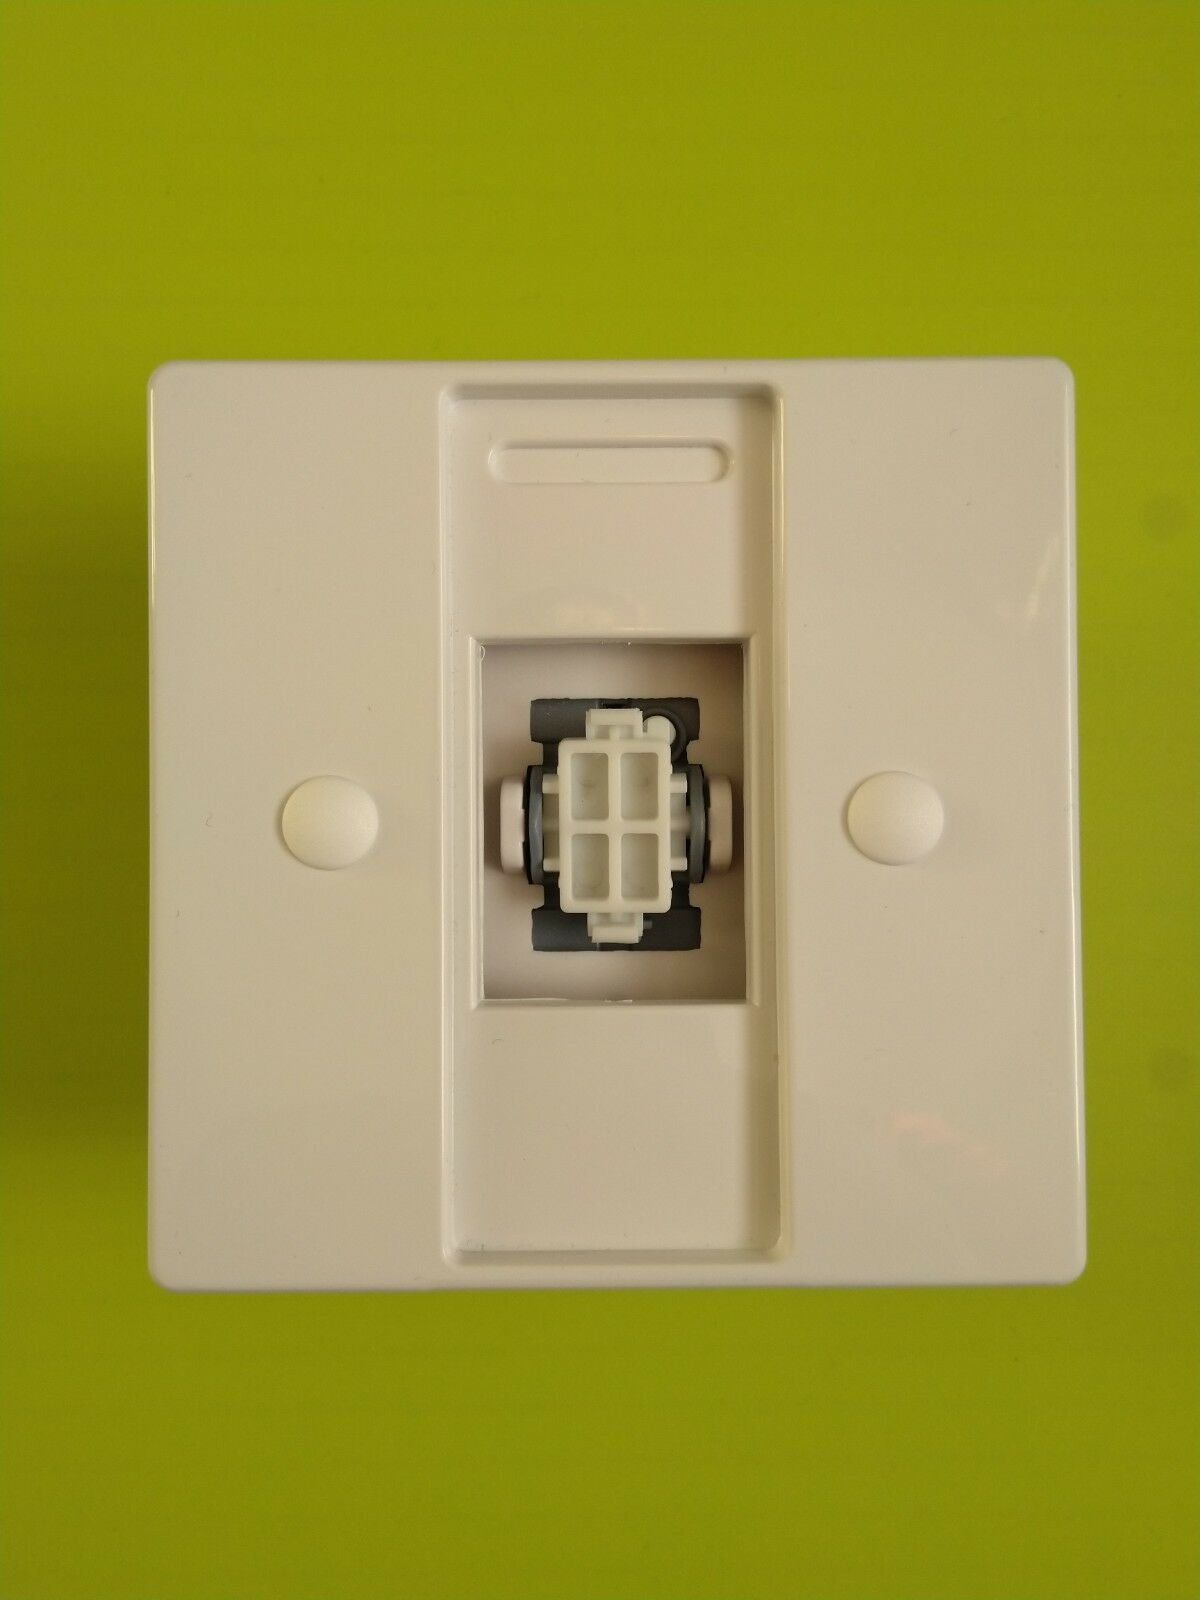 Ivory Philips Hue Dimmer Switch Plate Adapter Injection